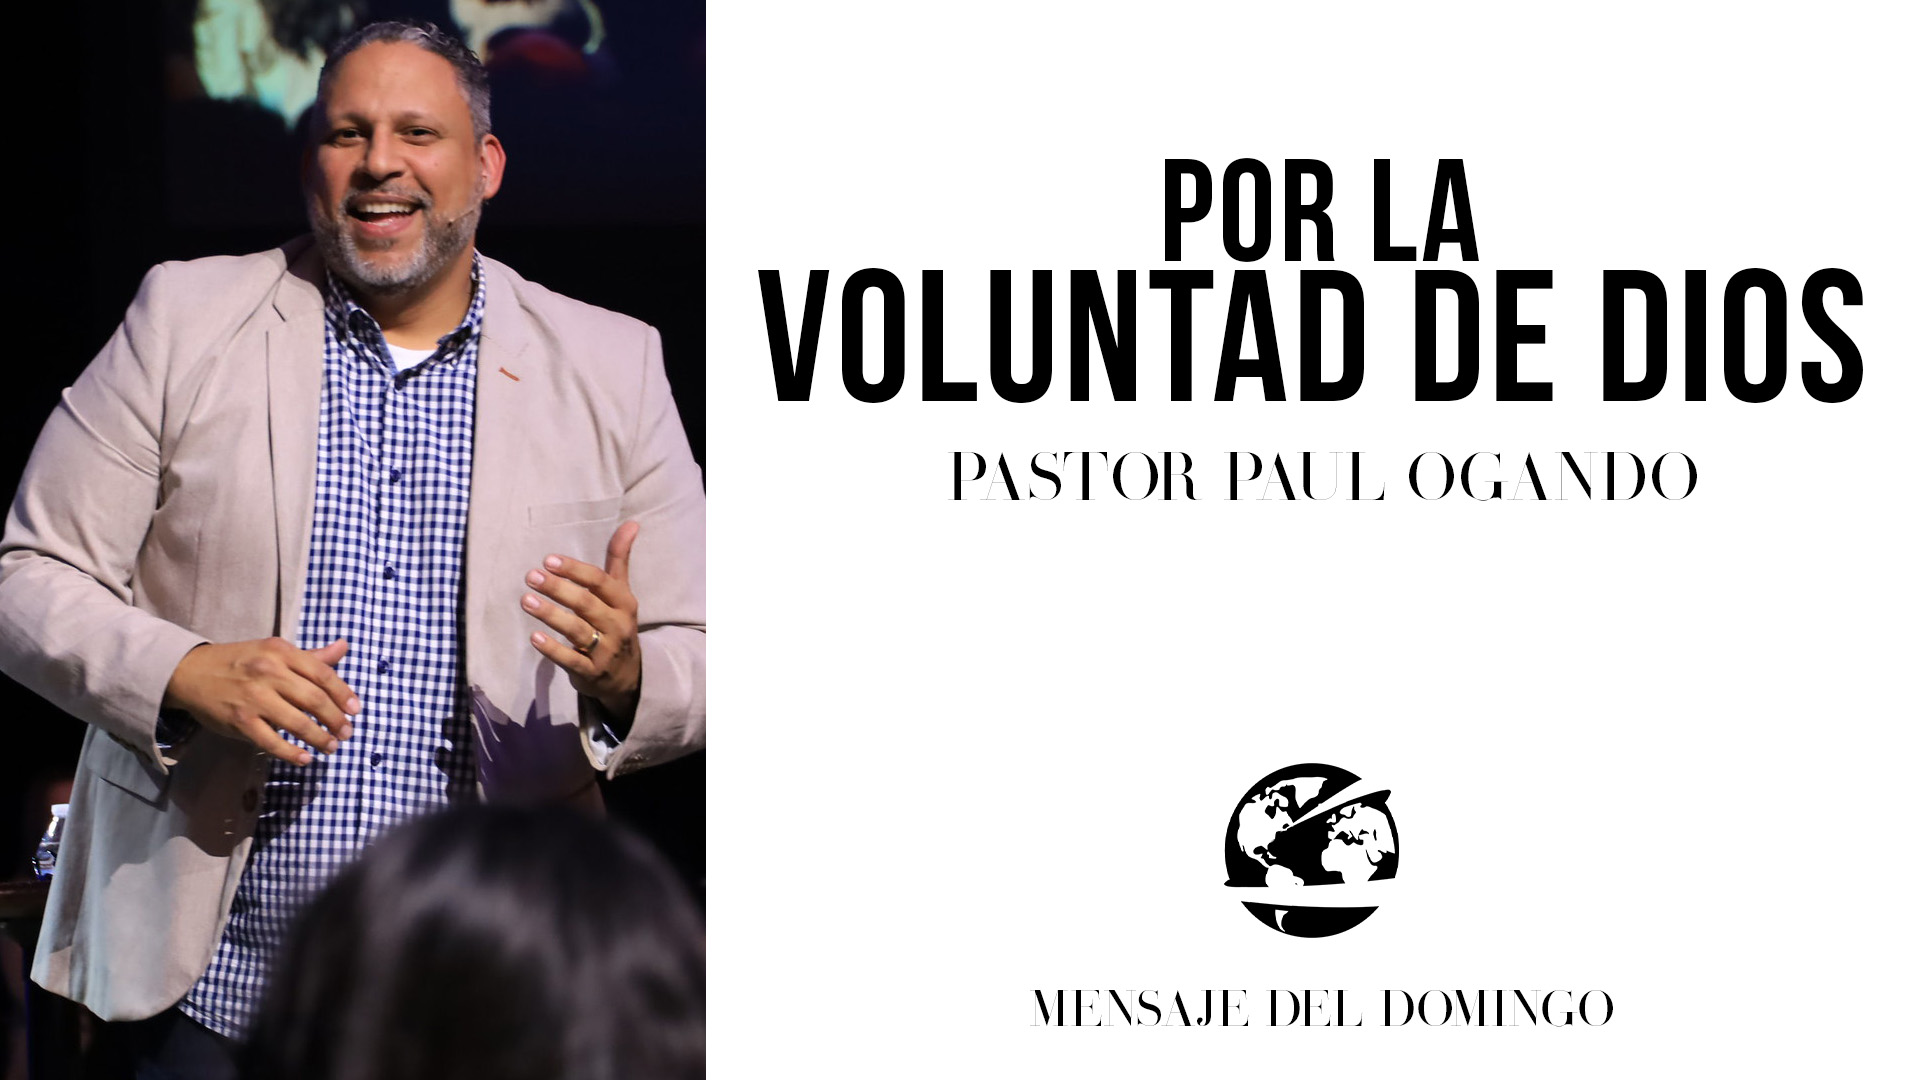 Watch Por La Voluntad De Dios Pt. 1